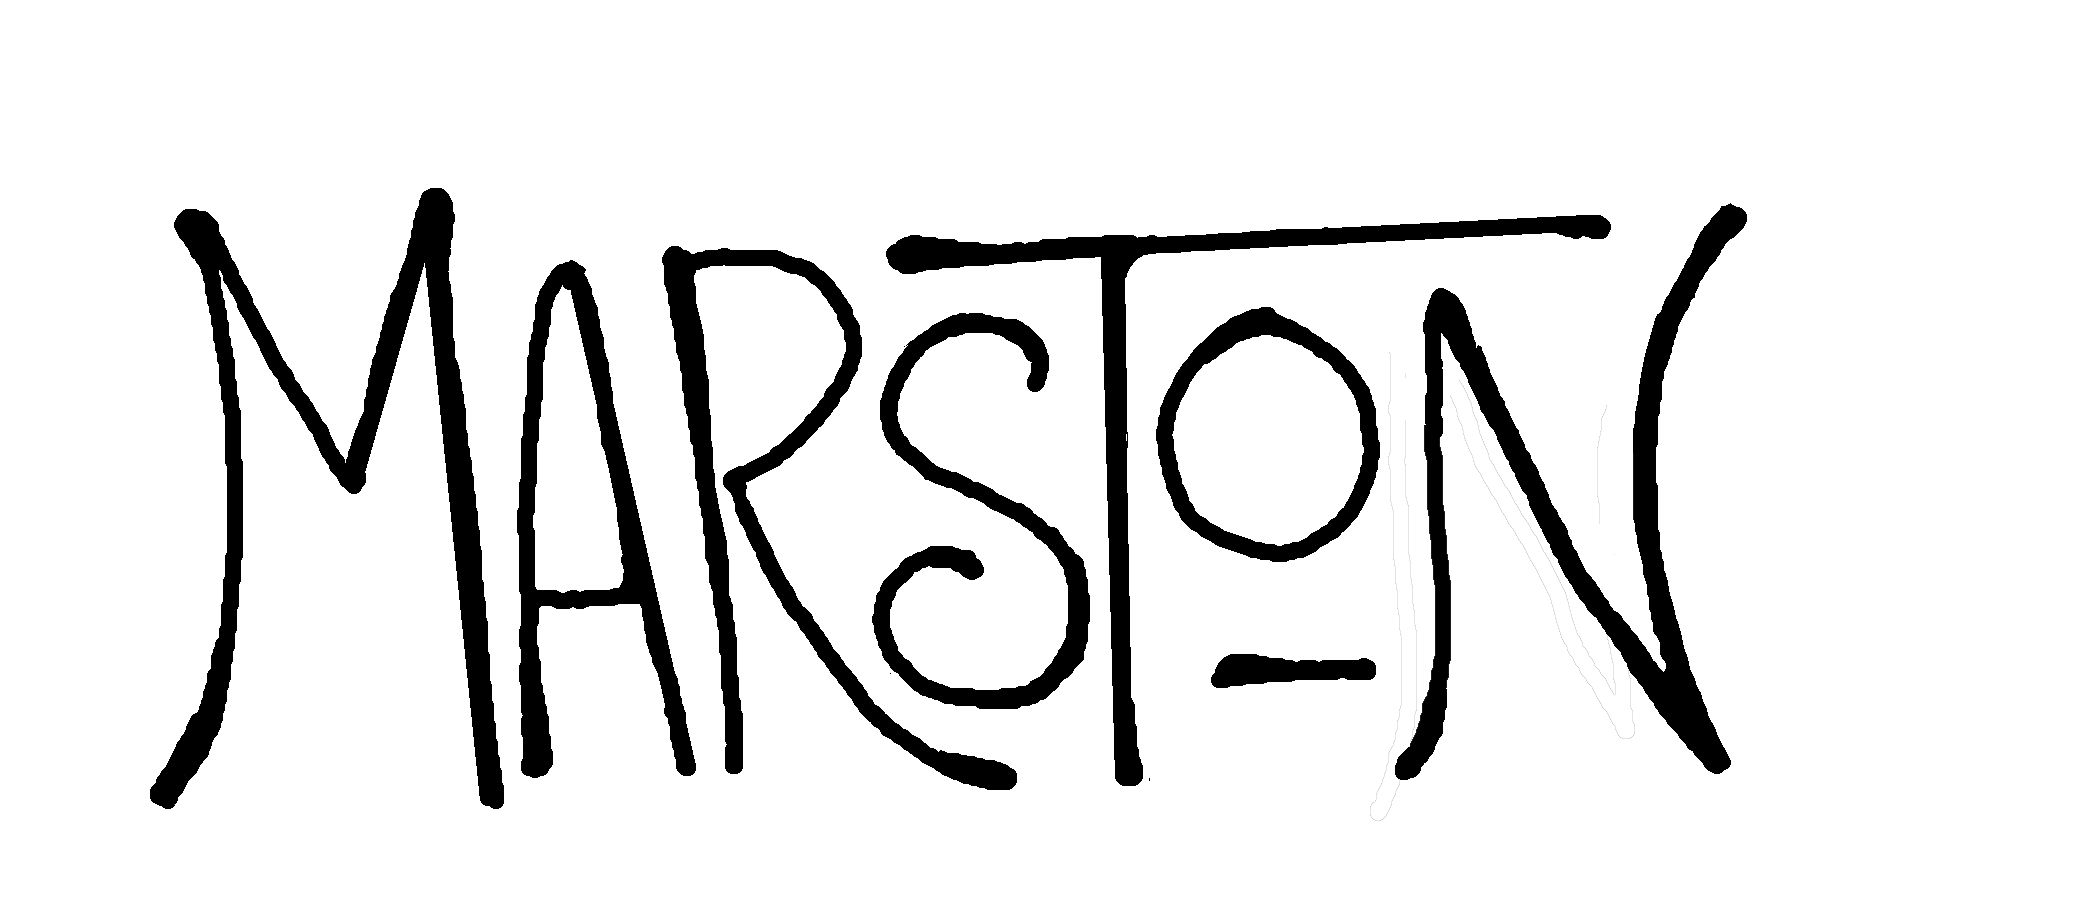 Sharon Marston's Signature